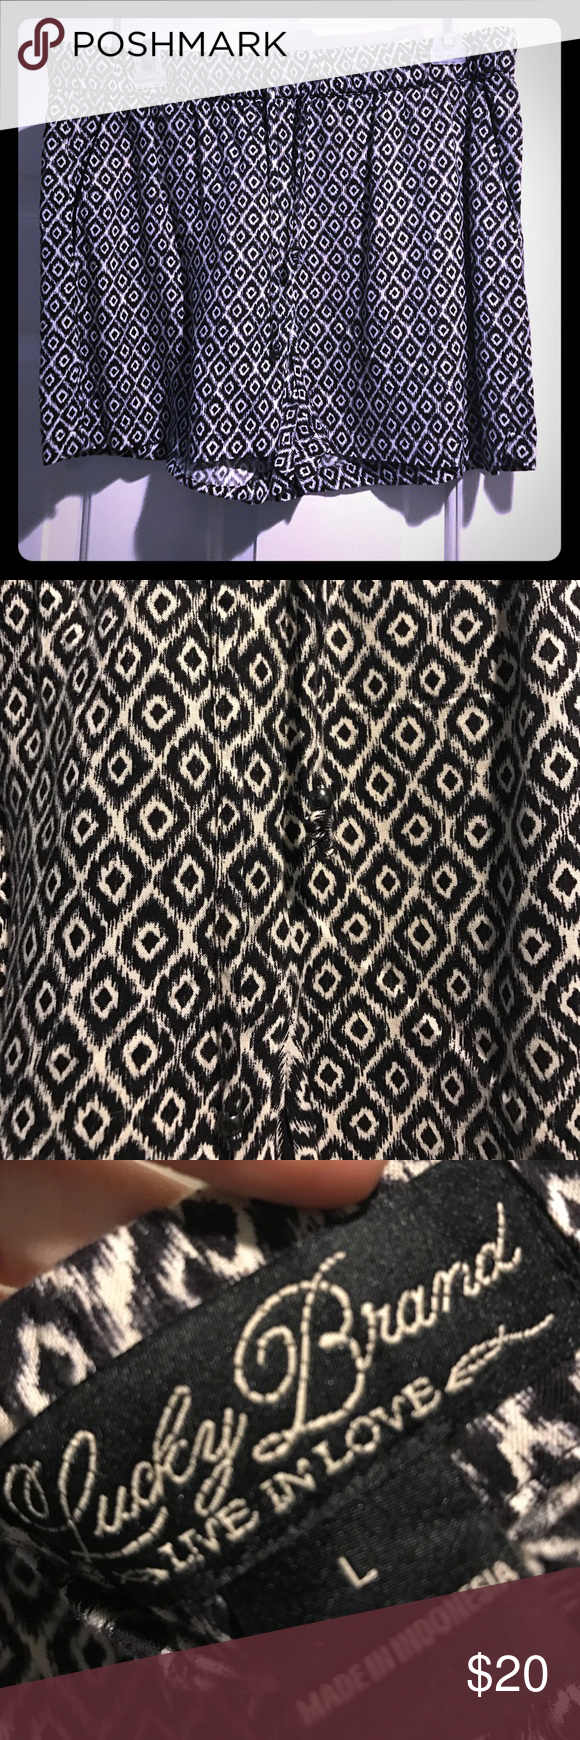 Lucky Brand Drawstring Shorts NWOT Lucky Brand Drawstring Shorts with black and white geometrical pattern // Sz Large // Perfect condition // False Pocket Lucky Brand Shorts